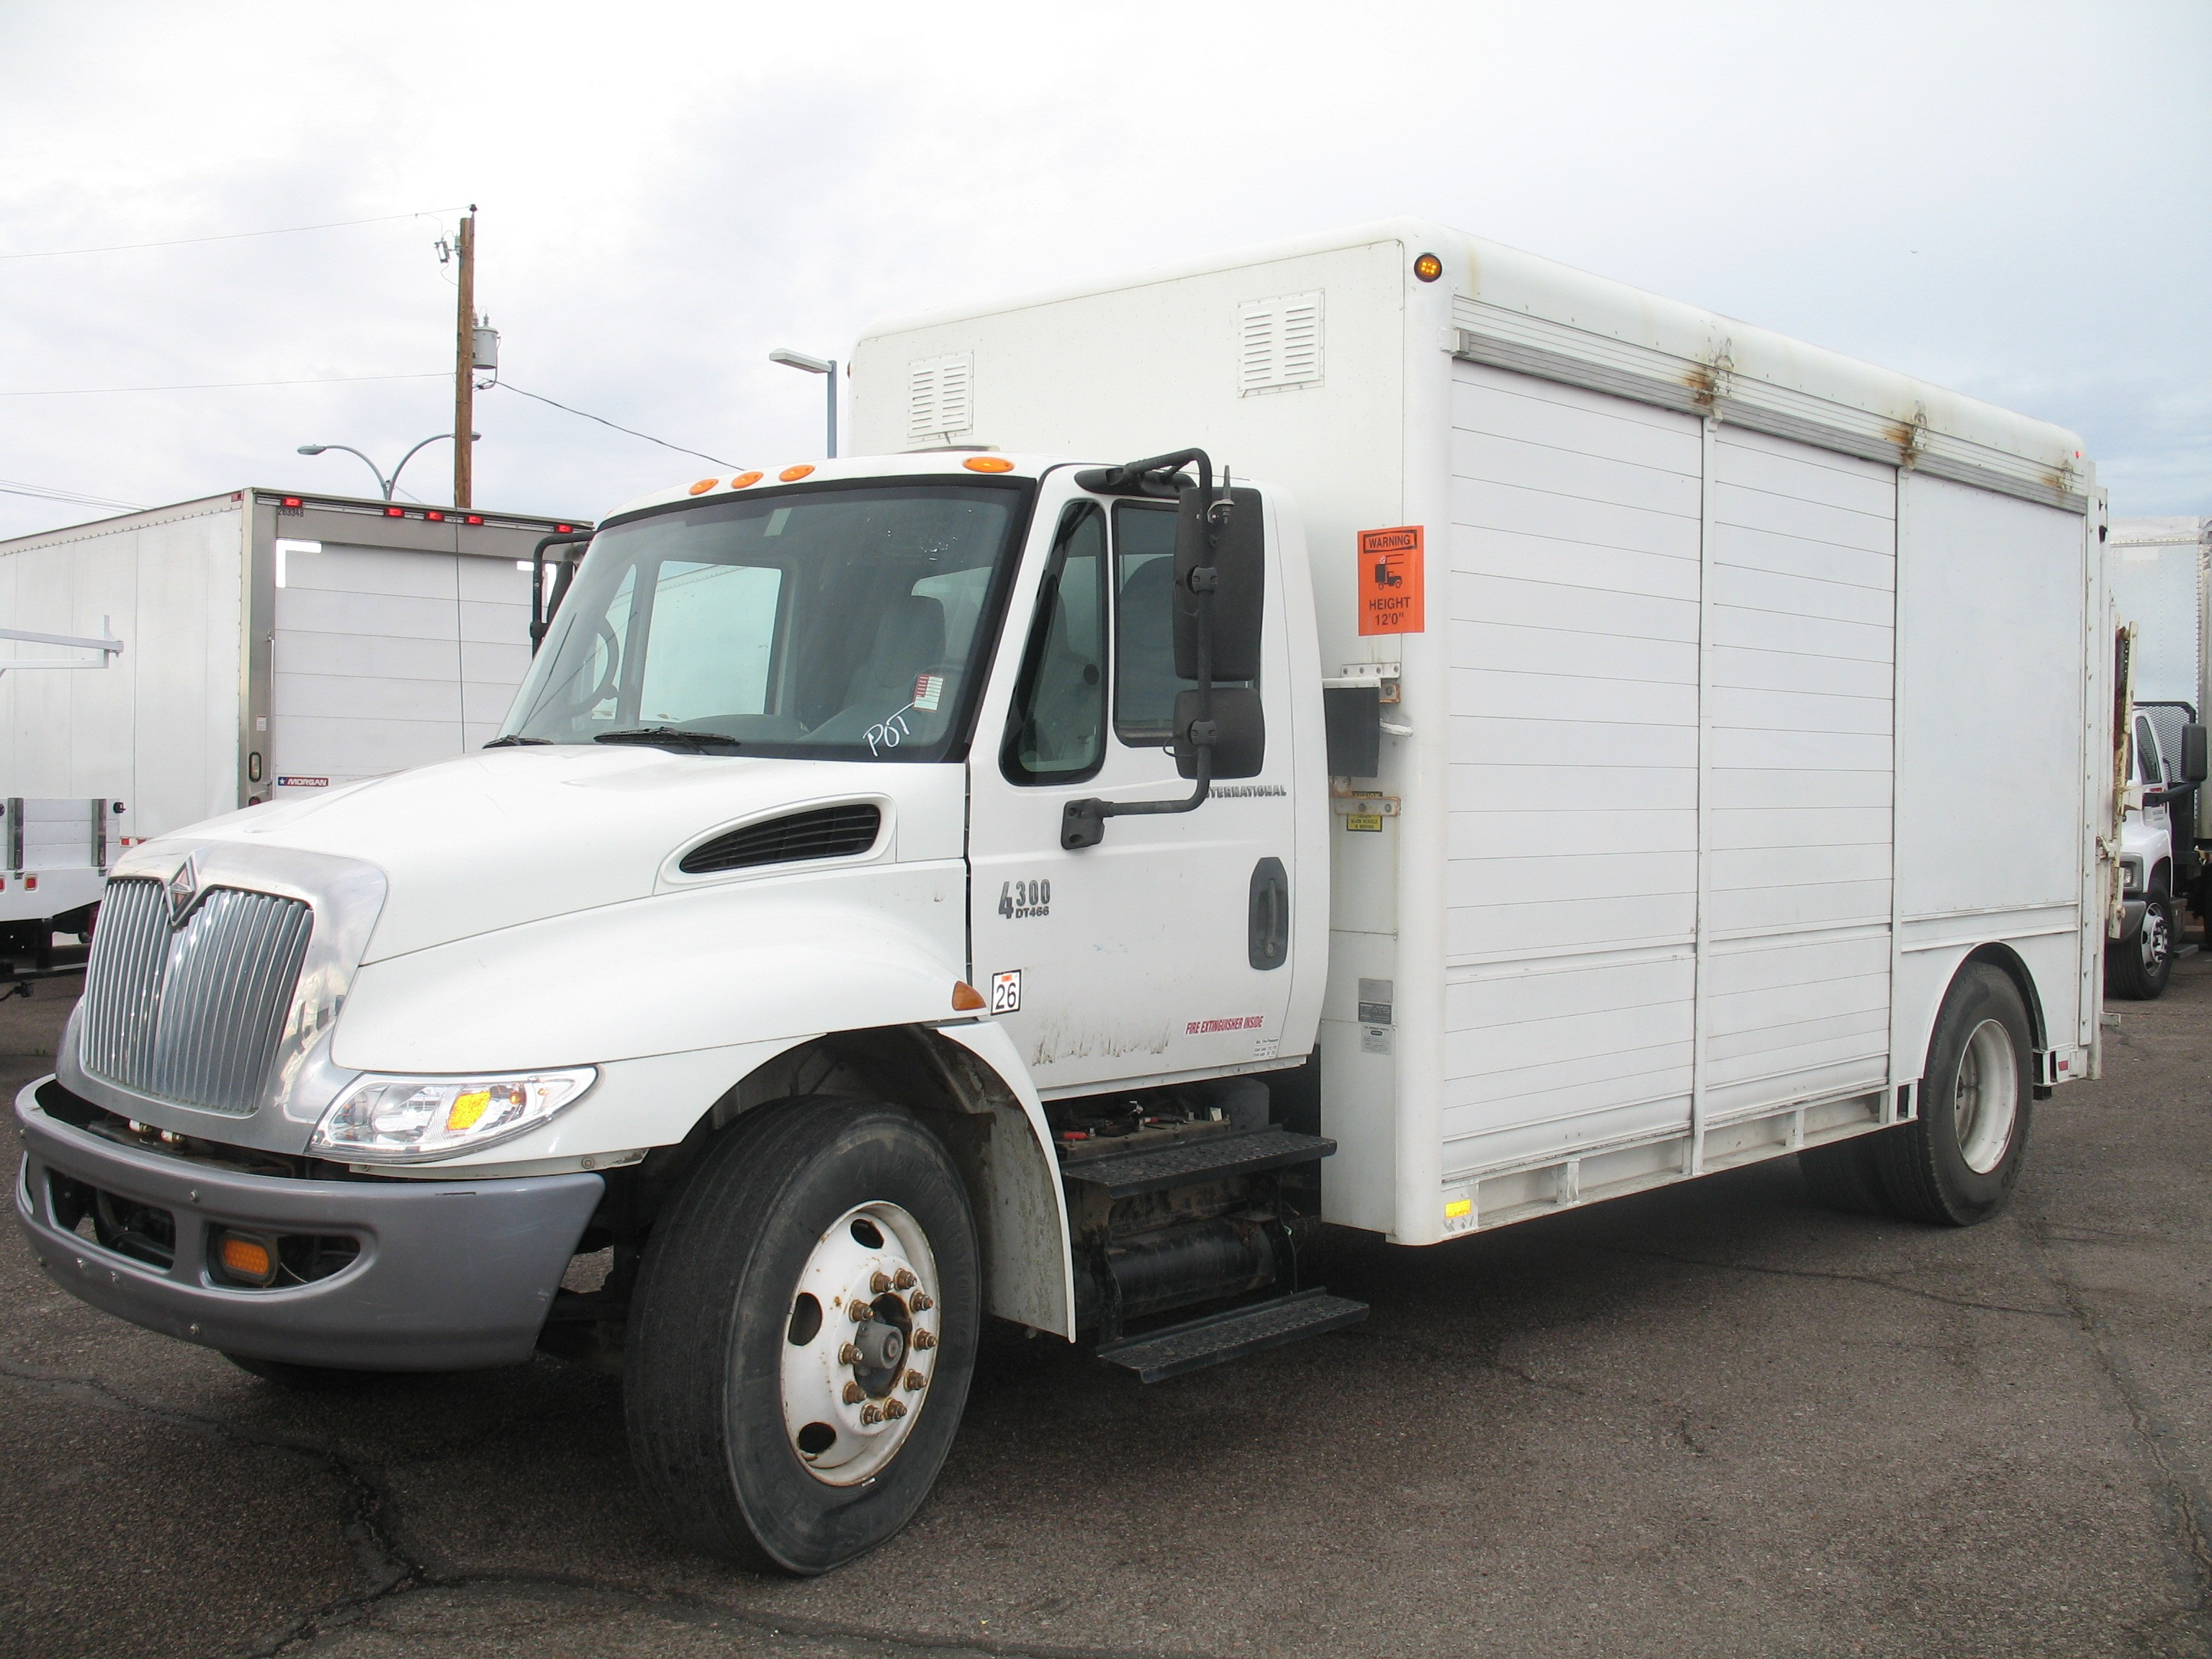 Used, 2007, International, 4300, Beverage Trucks